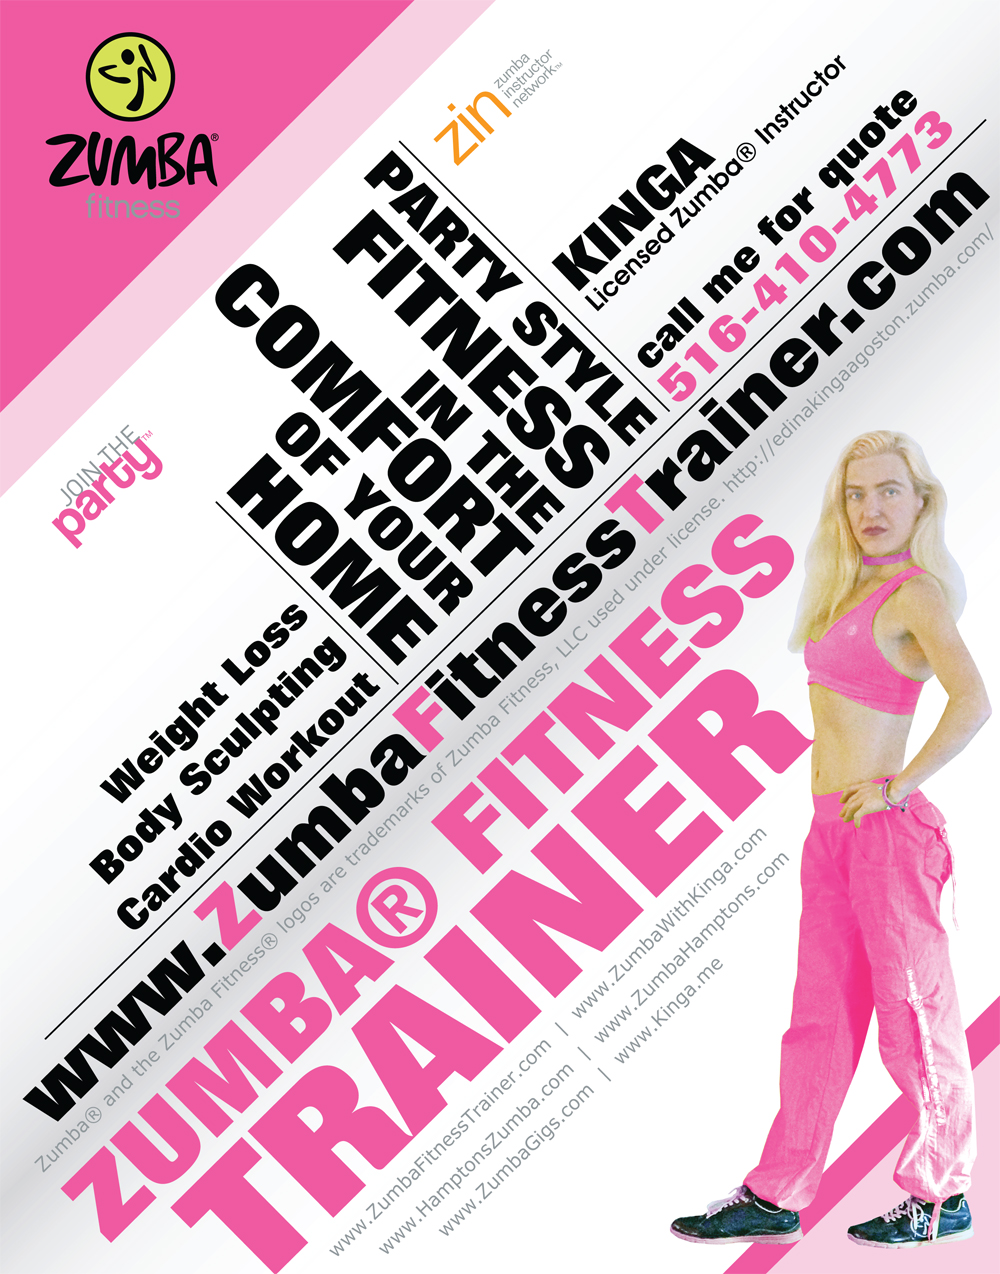 Zumba Fitness training at your home in the Hamptons, Long Island, New York with Licensed Instructor KINGA